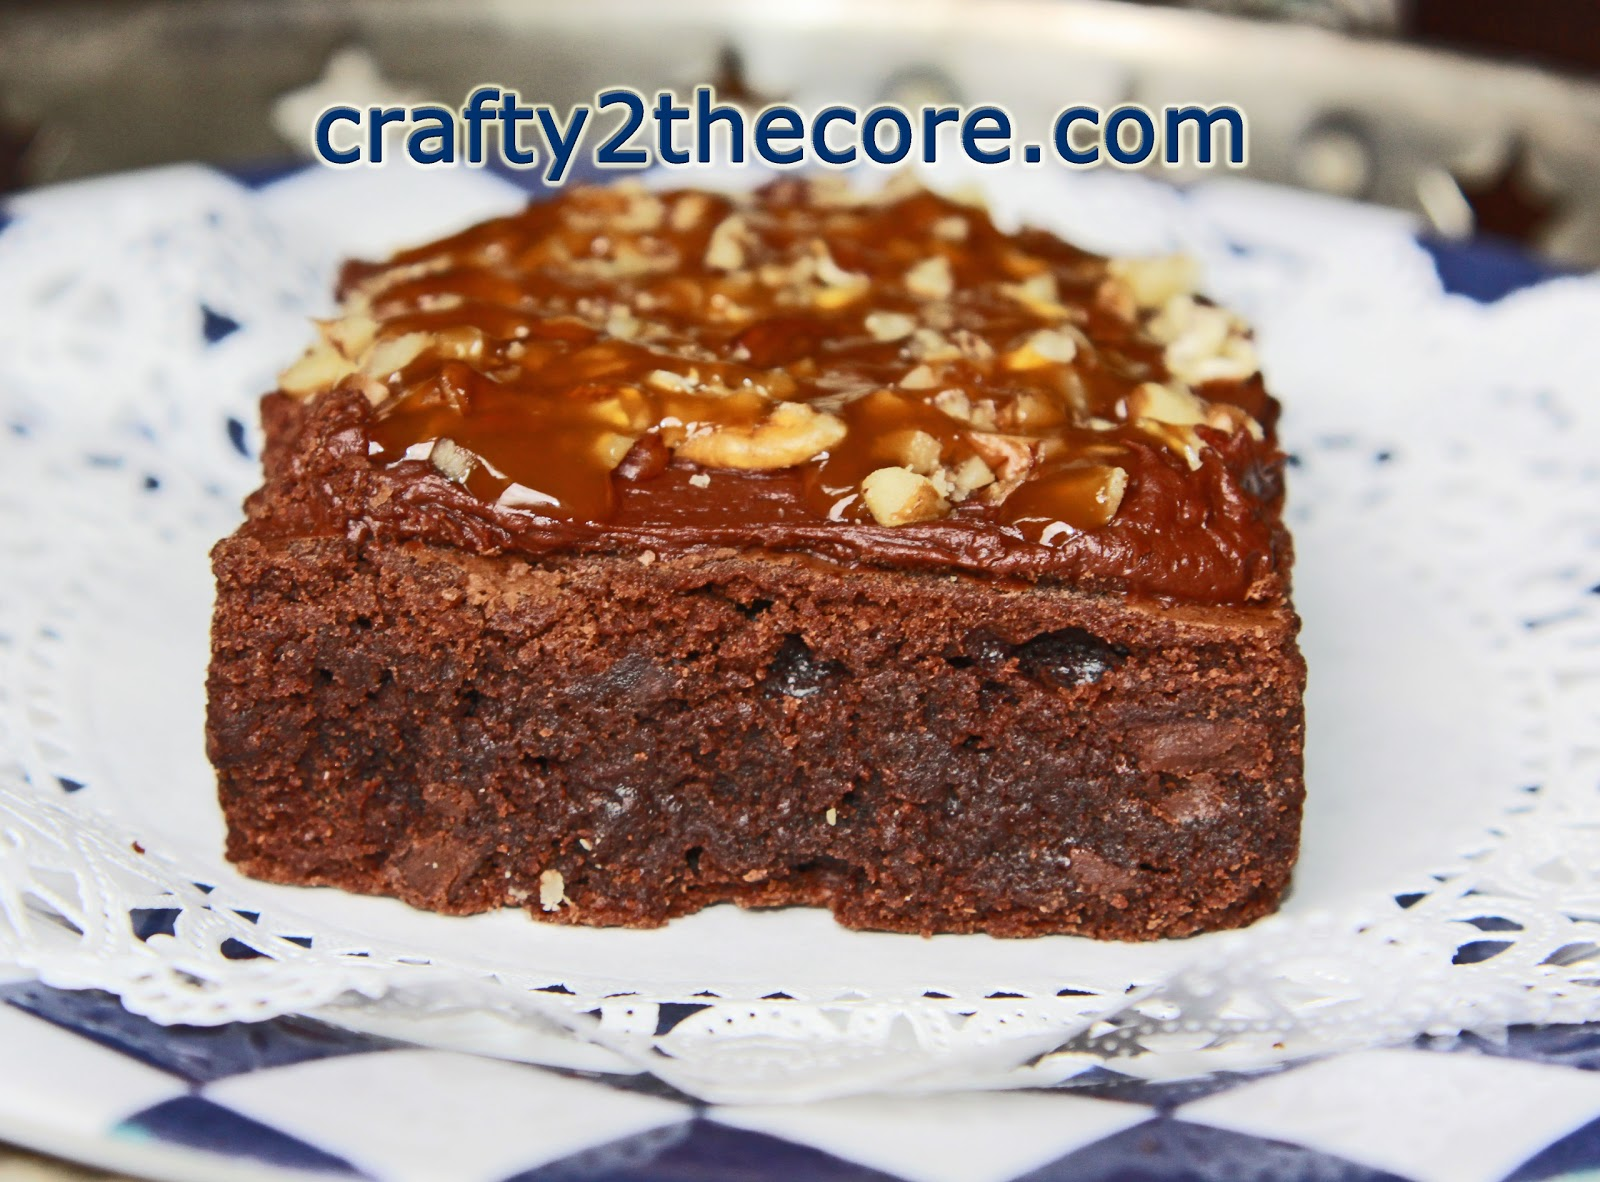 ~TURTLE BROWNIES GALORE~ Layered brownie smothered with melted chocolate and drizzled with caramel and pecans~